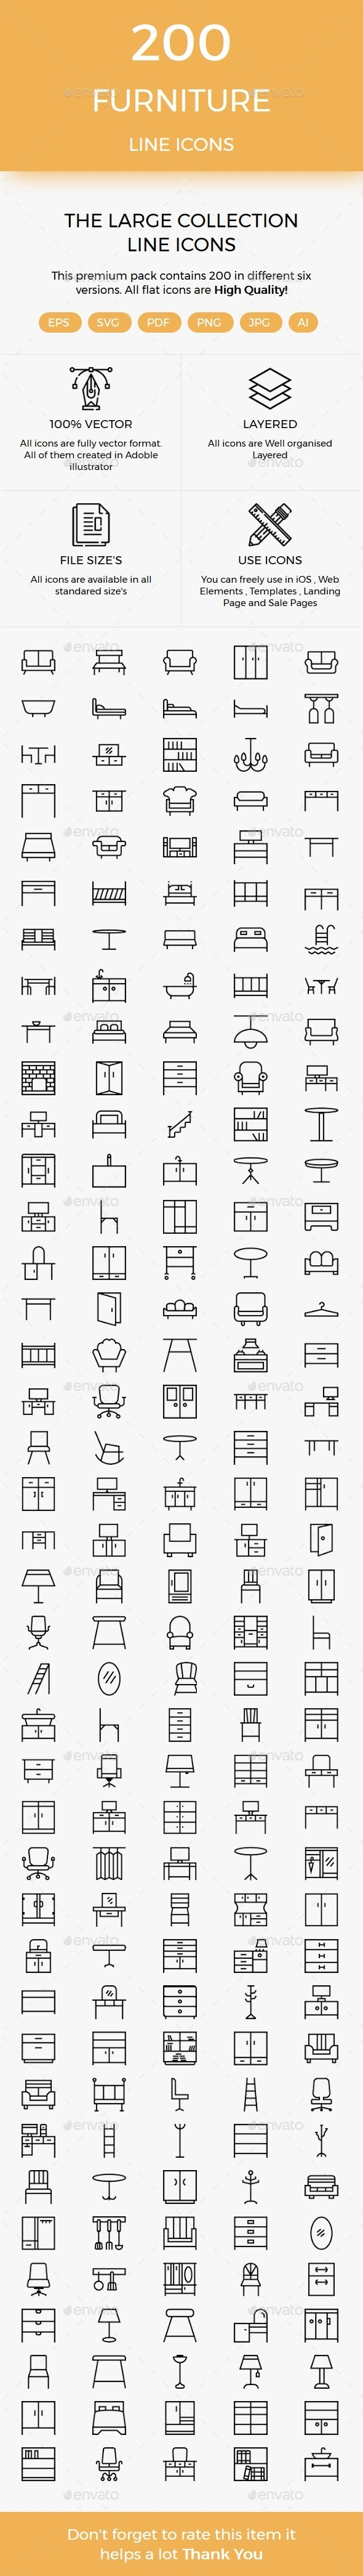 200 Furniture line icons - Icons